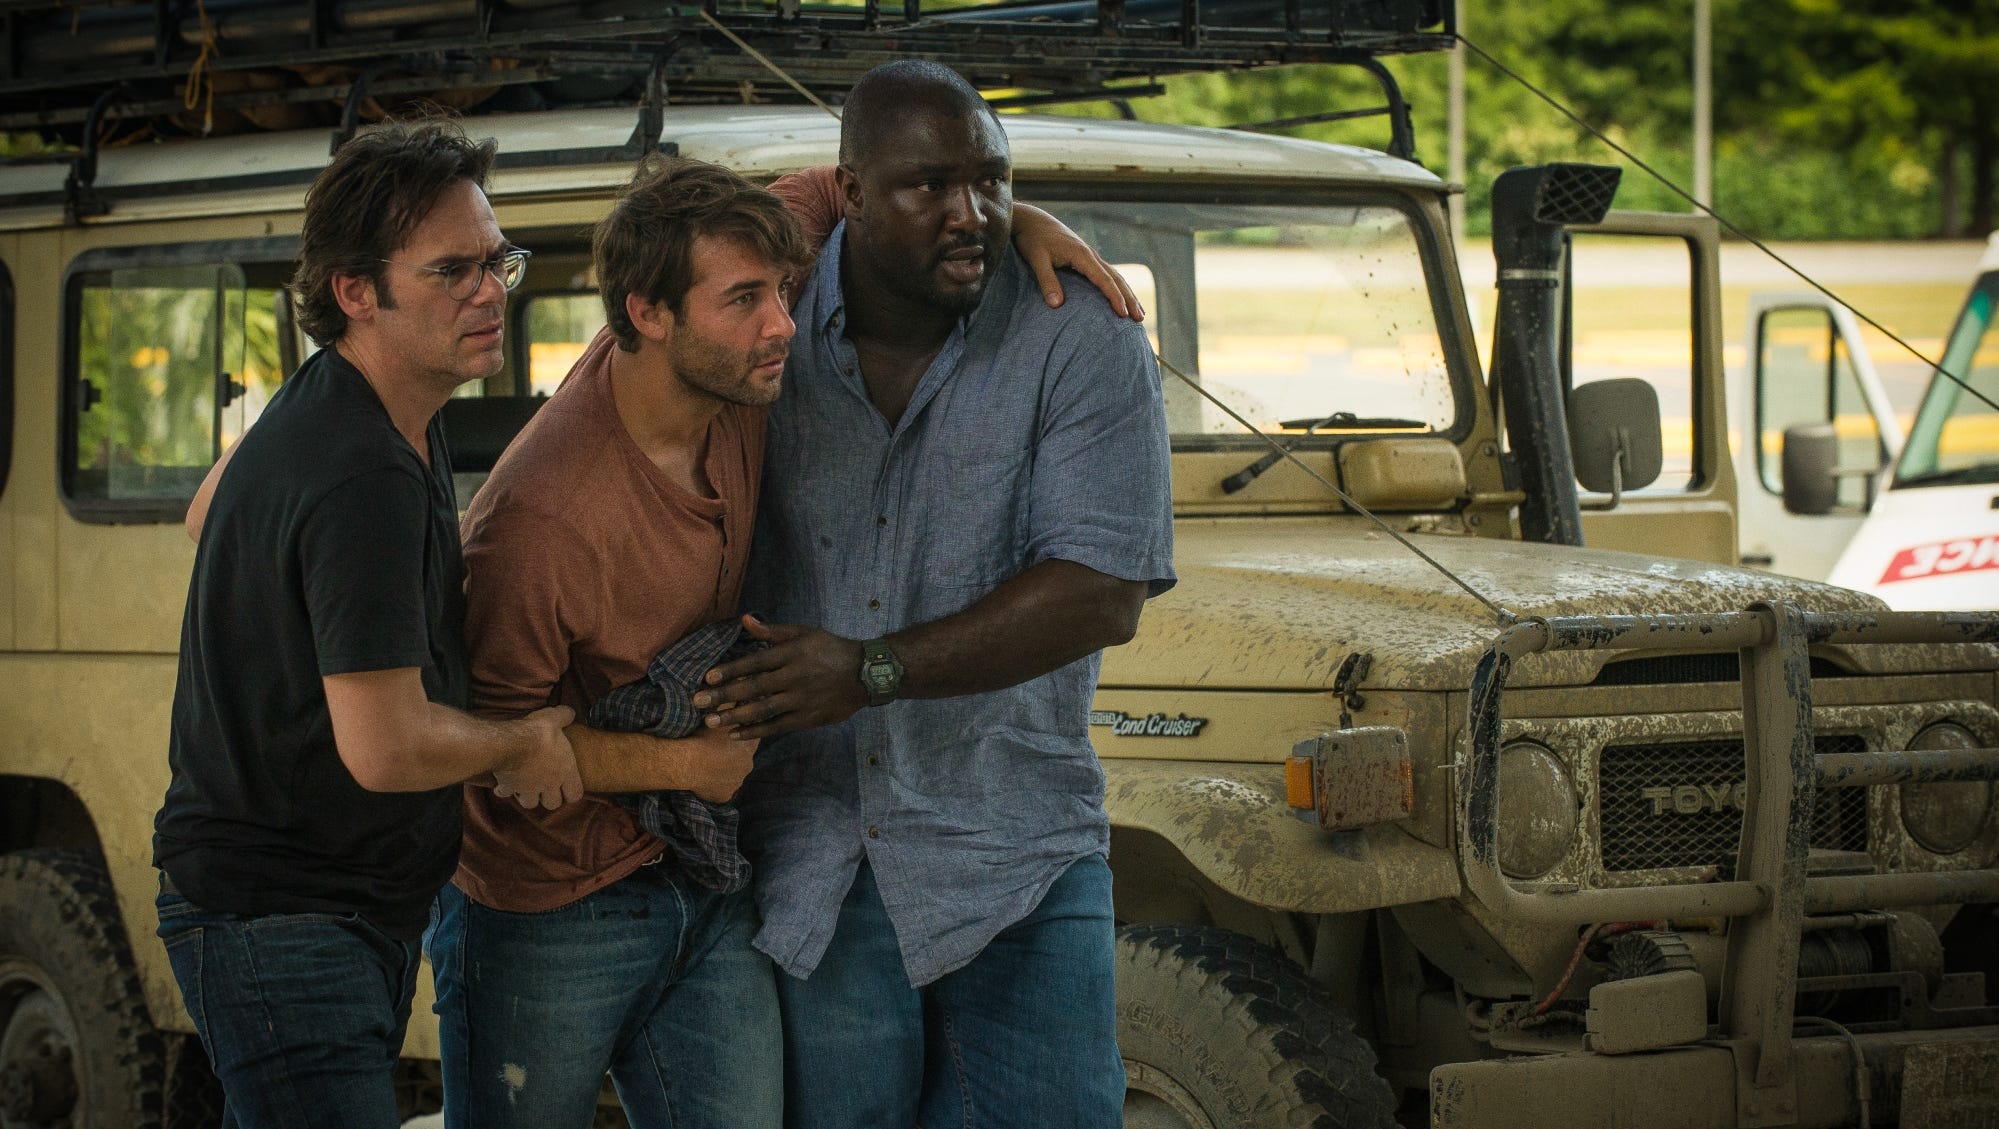 Cbs Orders Season 2 Of Zoo For Next Summer